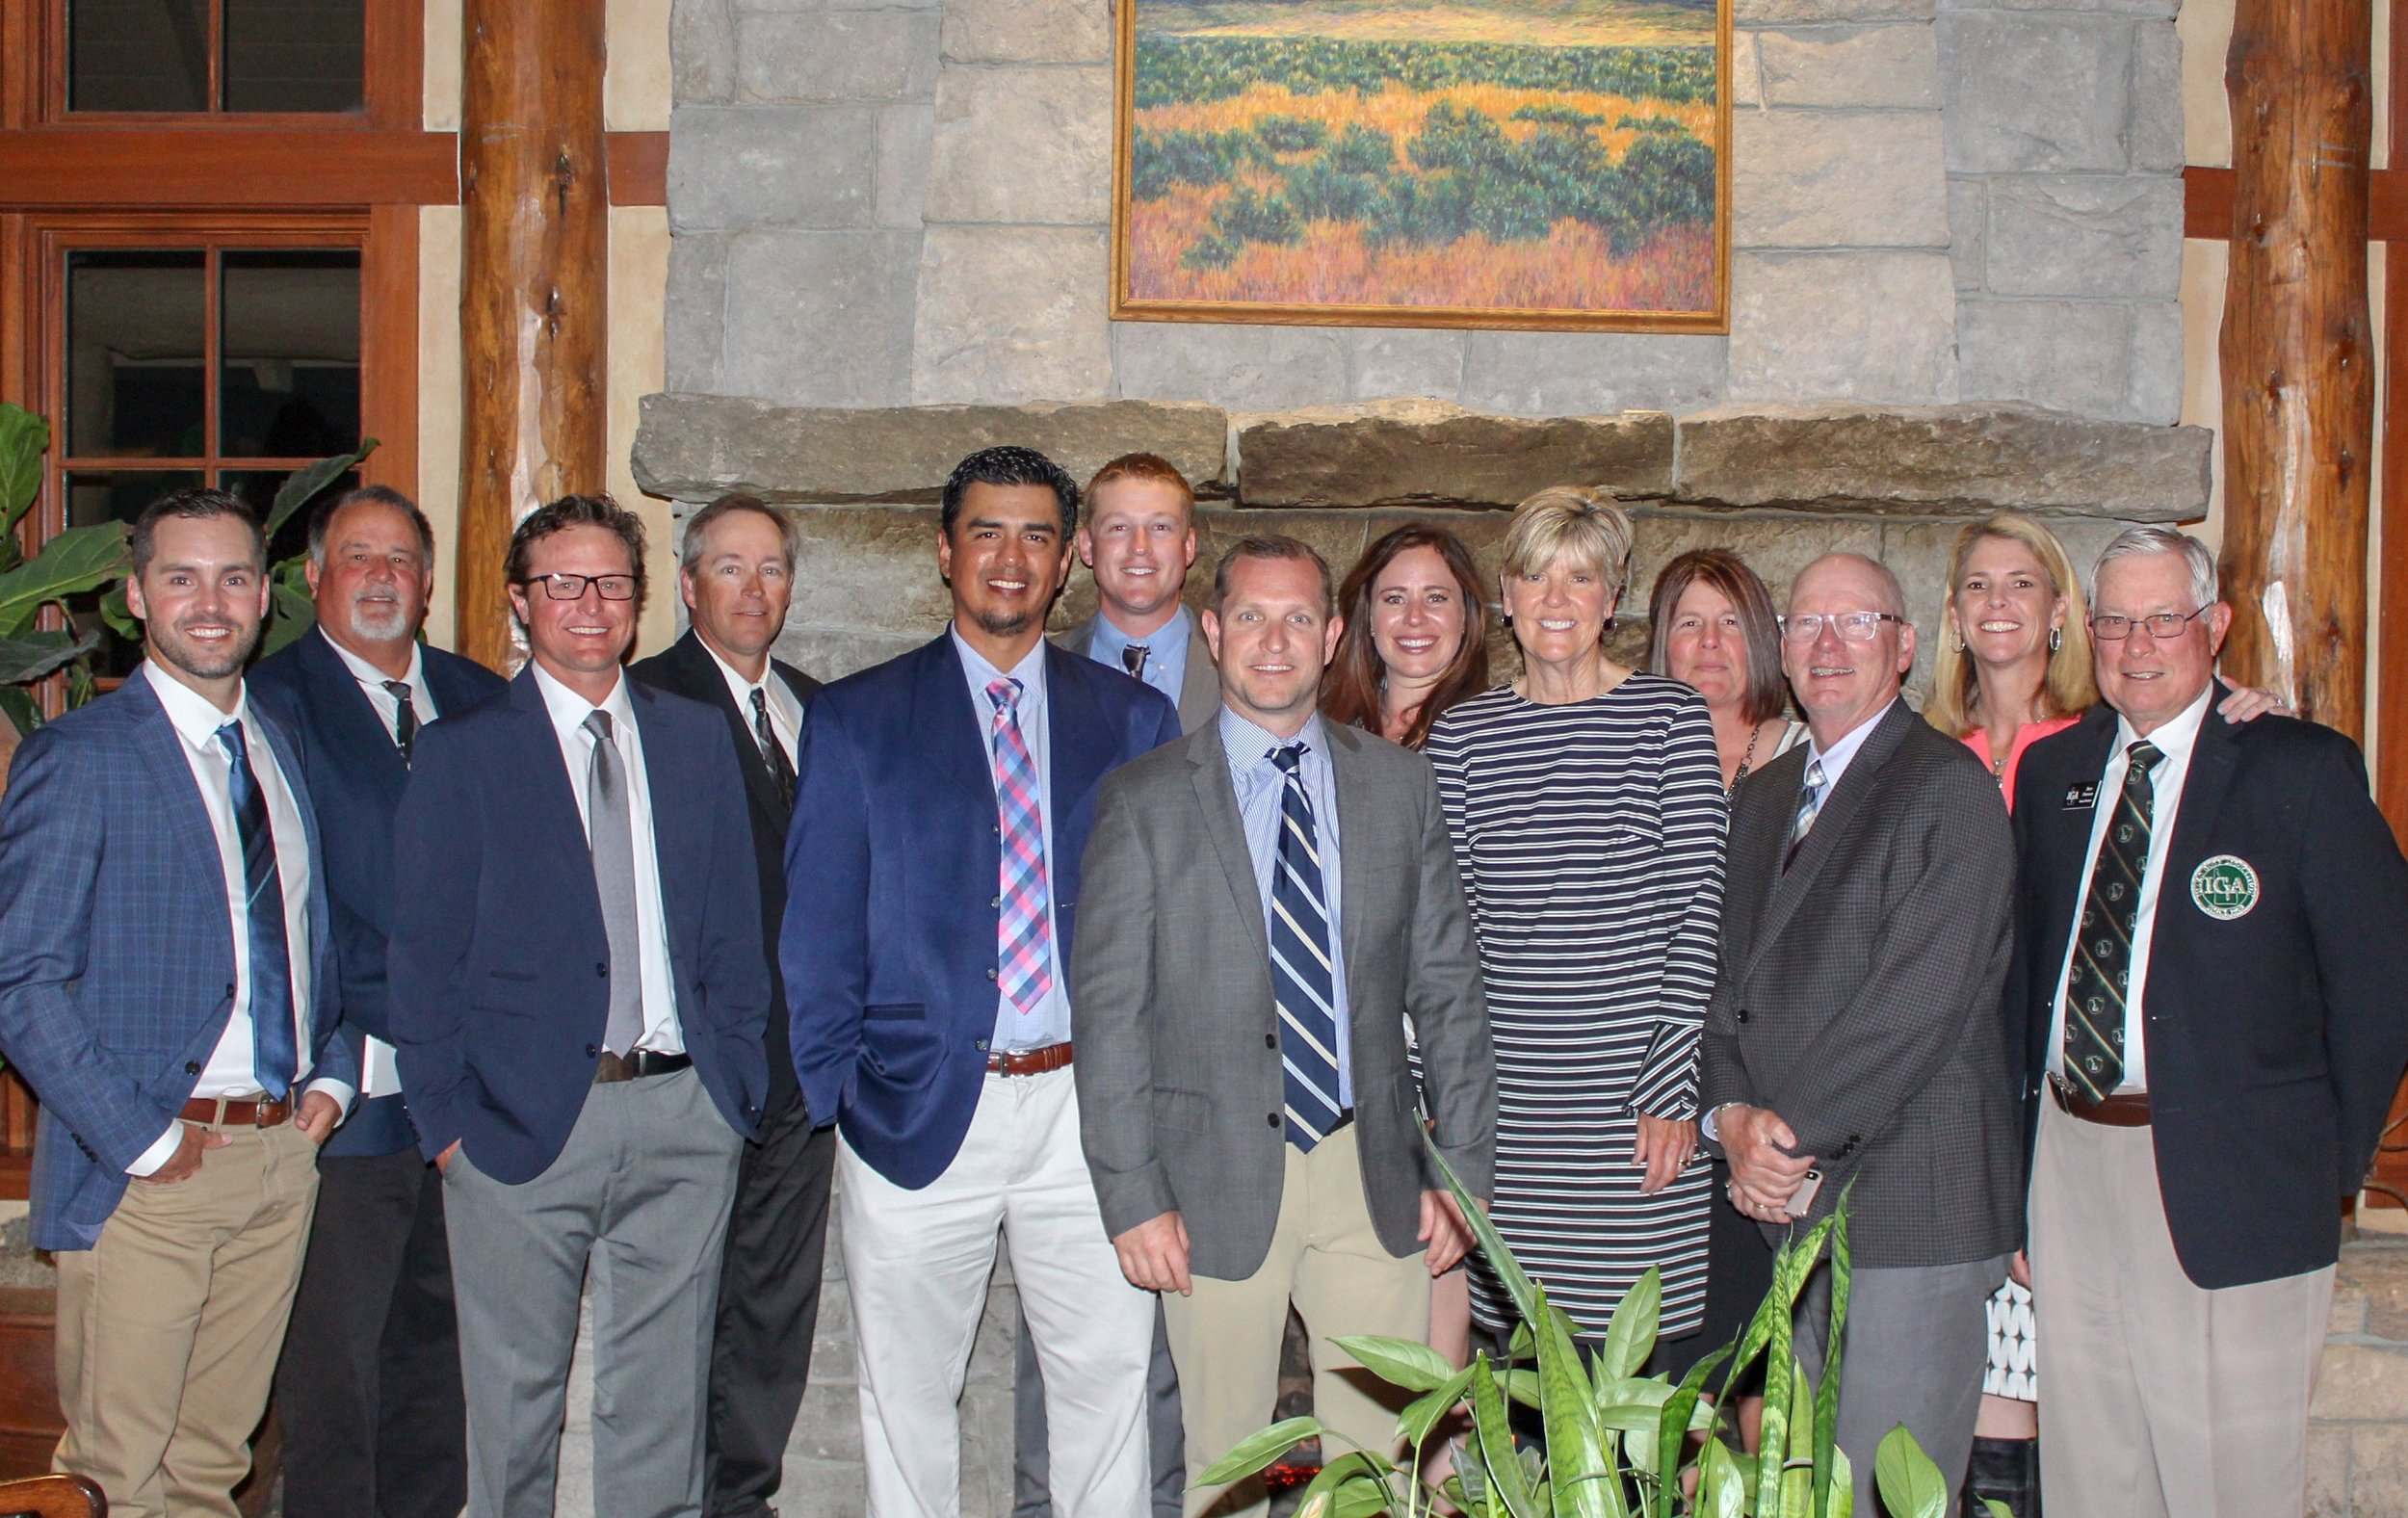 2019 Idaho PNGA Cup Team     Front Row:    Joe Panzeri, Dan Stewart, Gilbert Livas, Jesse Hibler, Karen Darrington, Scott Masingill, Captain Russ Peterson     Back Row:    Dan Pickens, Darren Kuhn, Ty Travis, Michelle Gooding, Kareen Markle, Abby Black